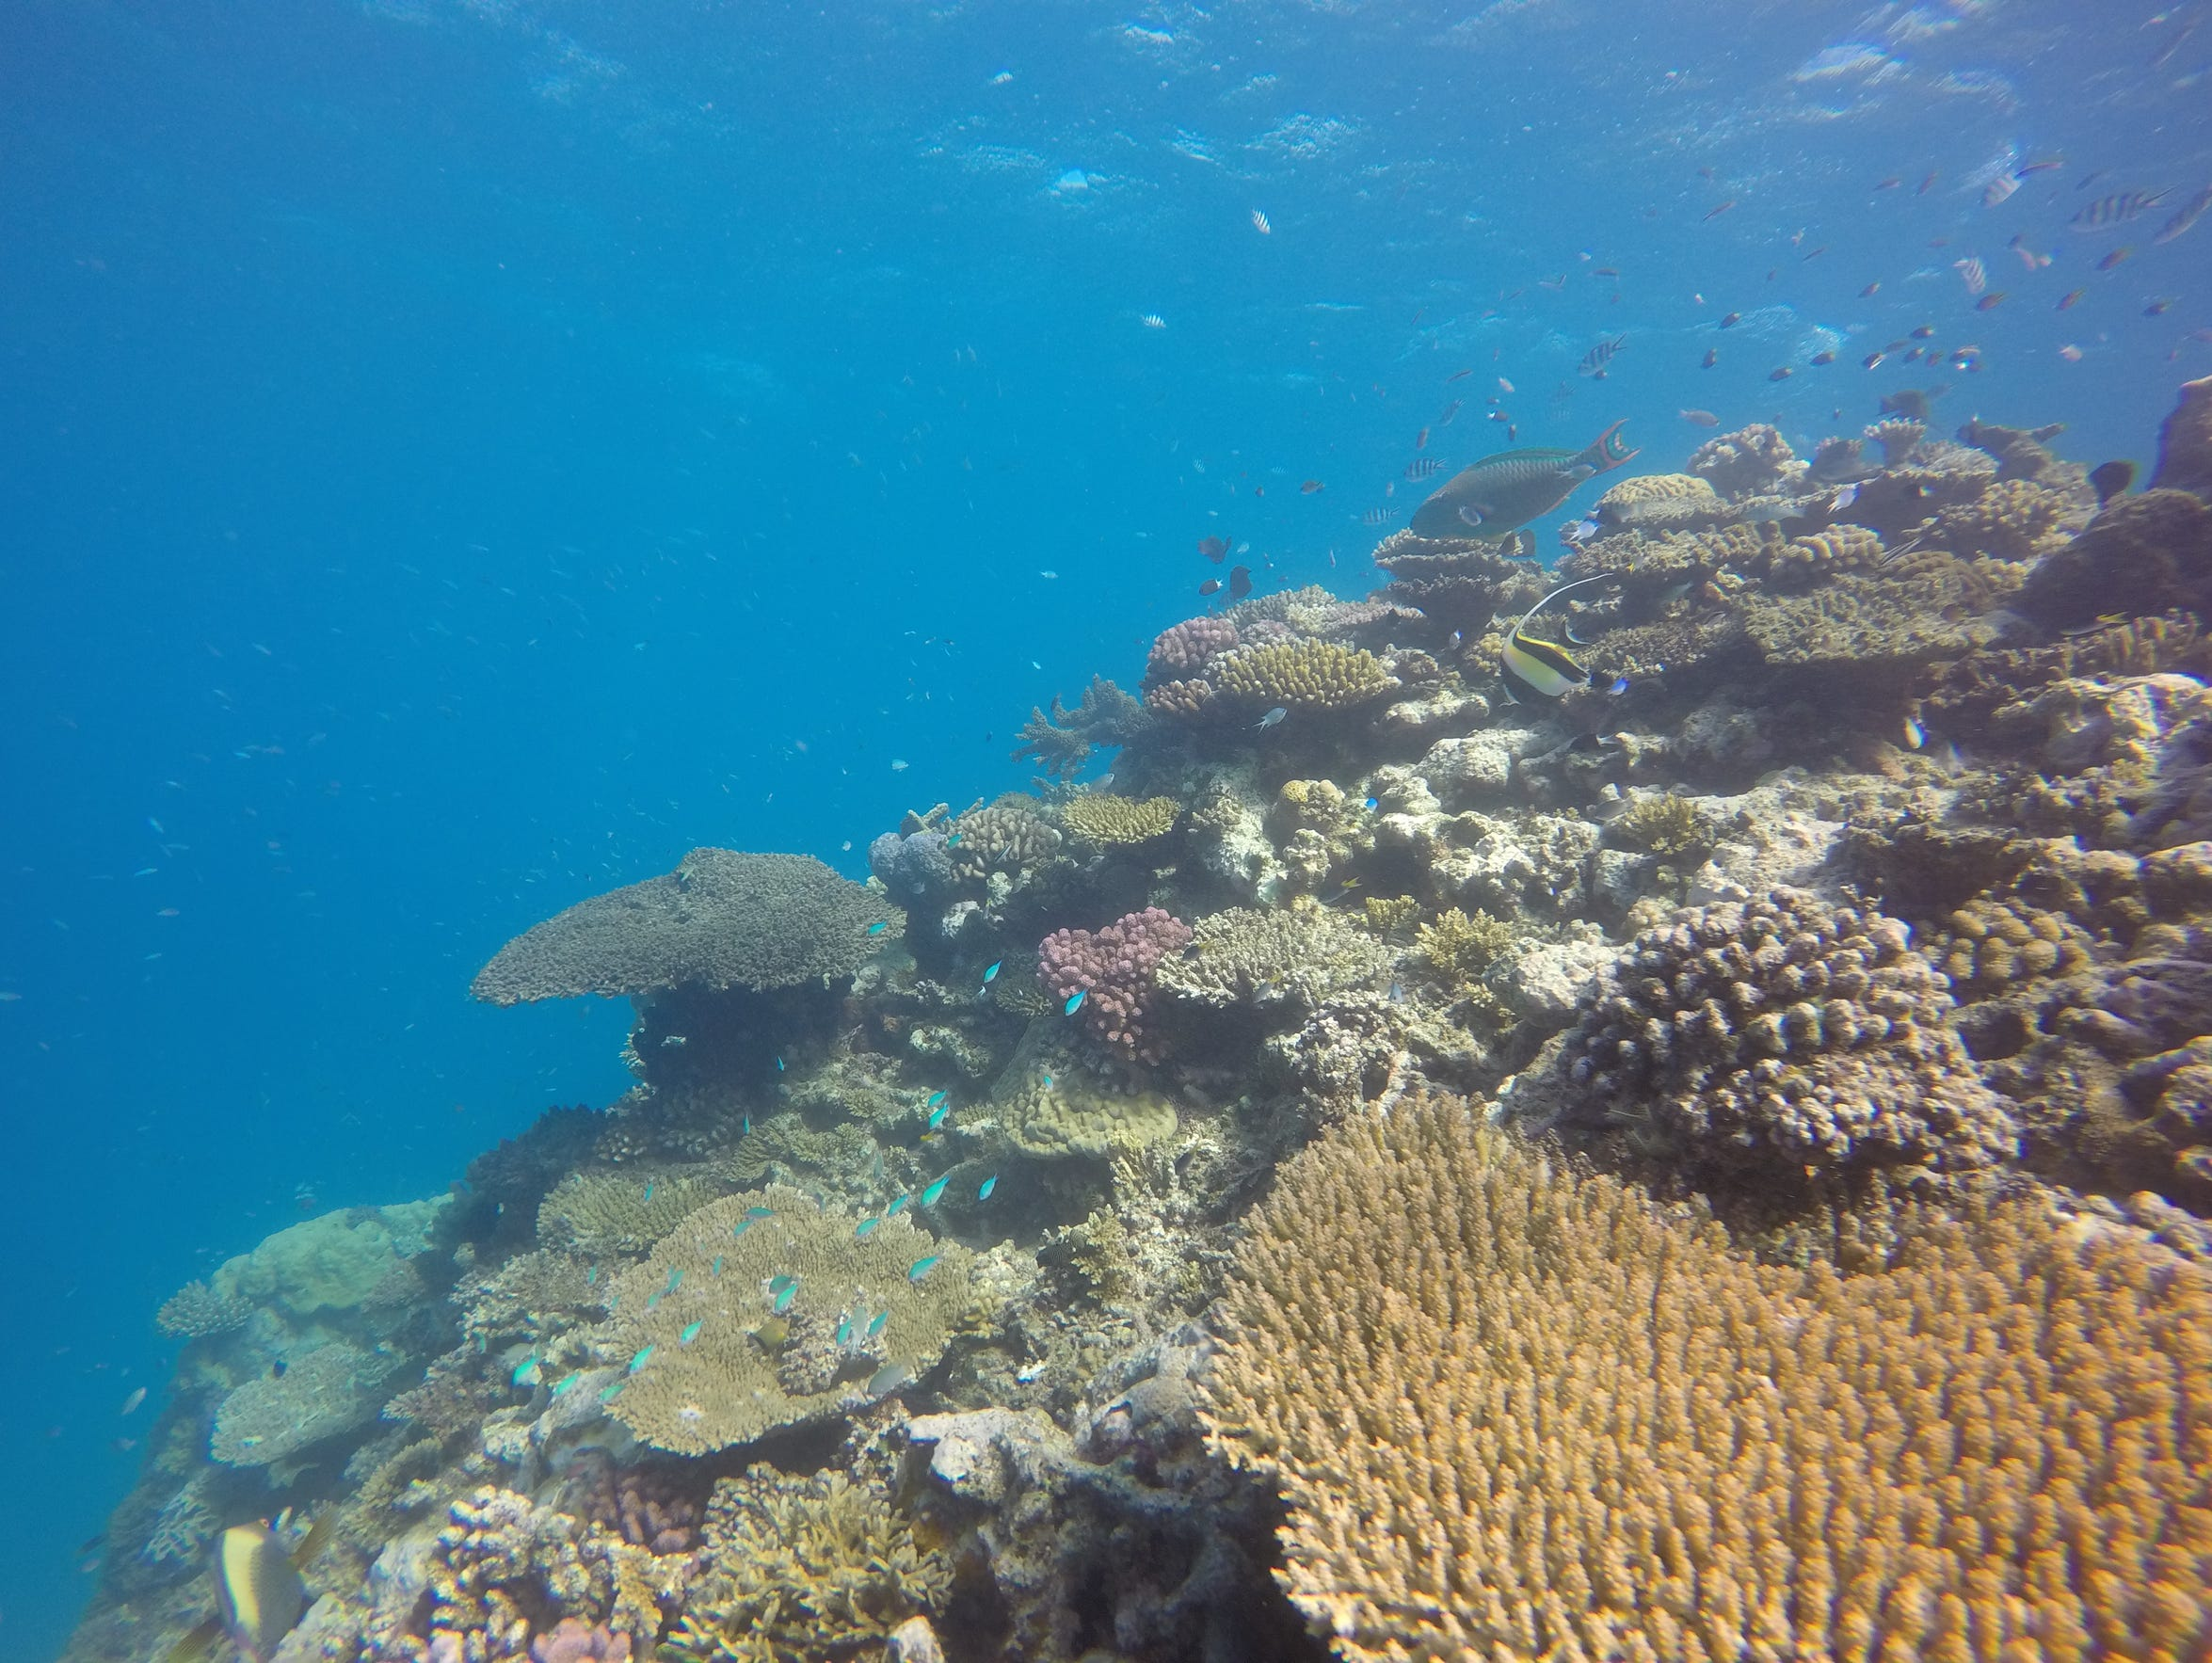 Corals and fish form a kaleidoscope of life along the Great Barrier Reef.